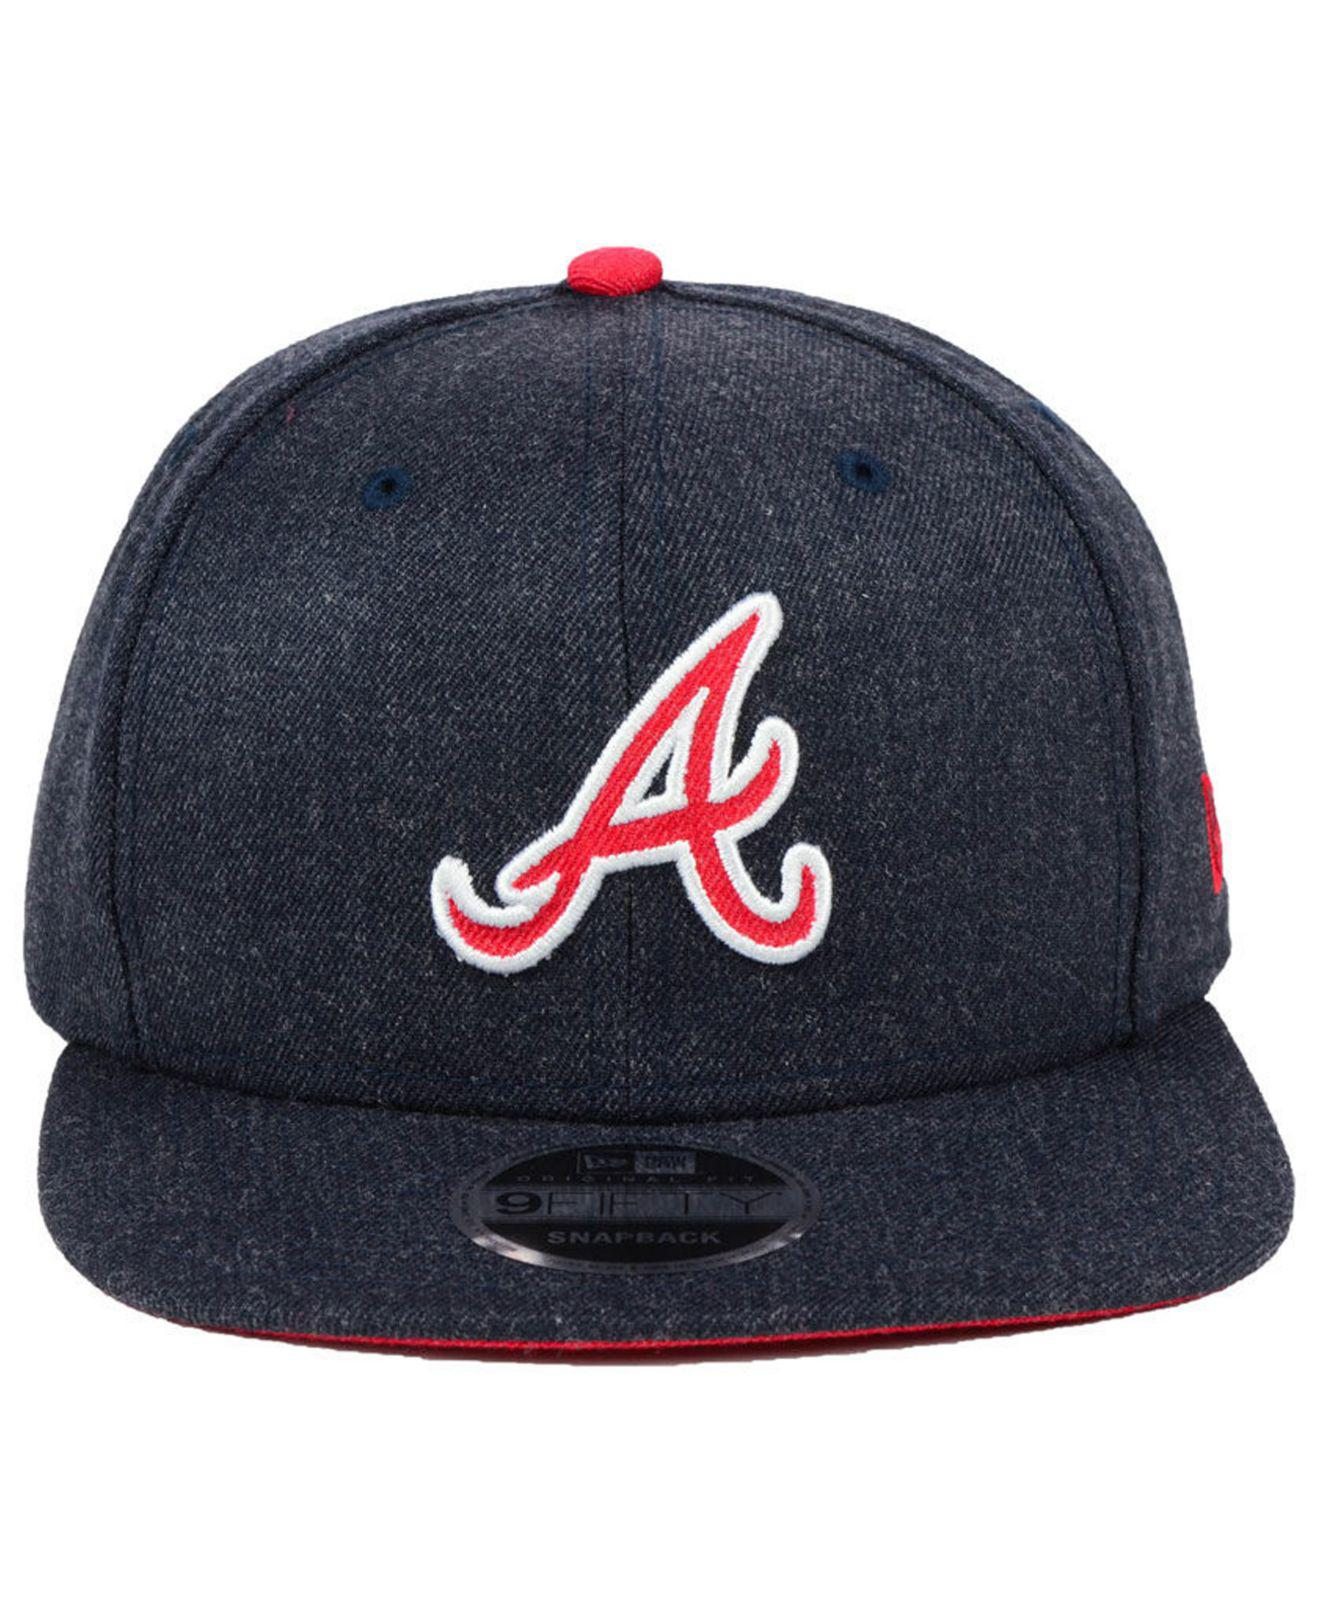 new styles 8323a f3491 ... cheap lyst ktz atlanta braves heather hype 9fifty snapback cap in blue  for men 221bd 93d16